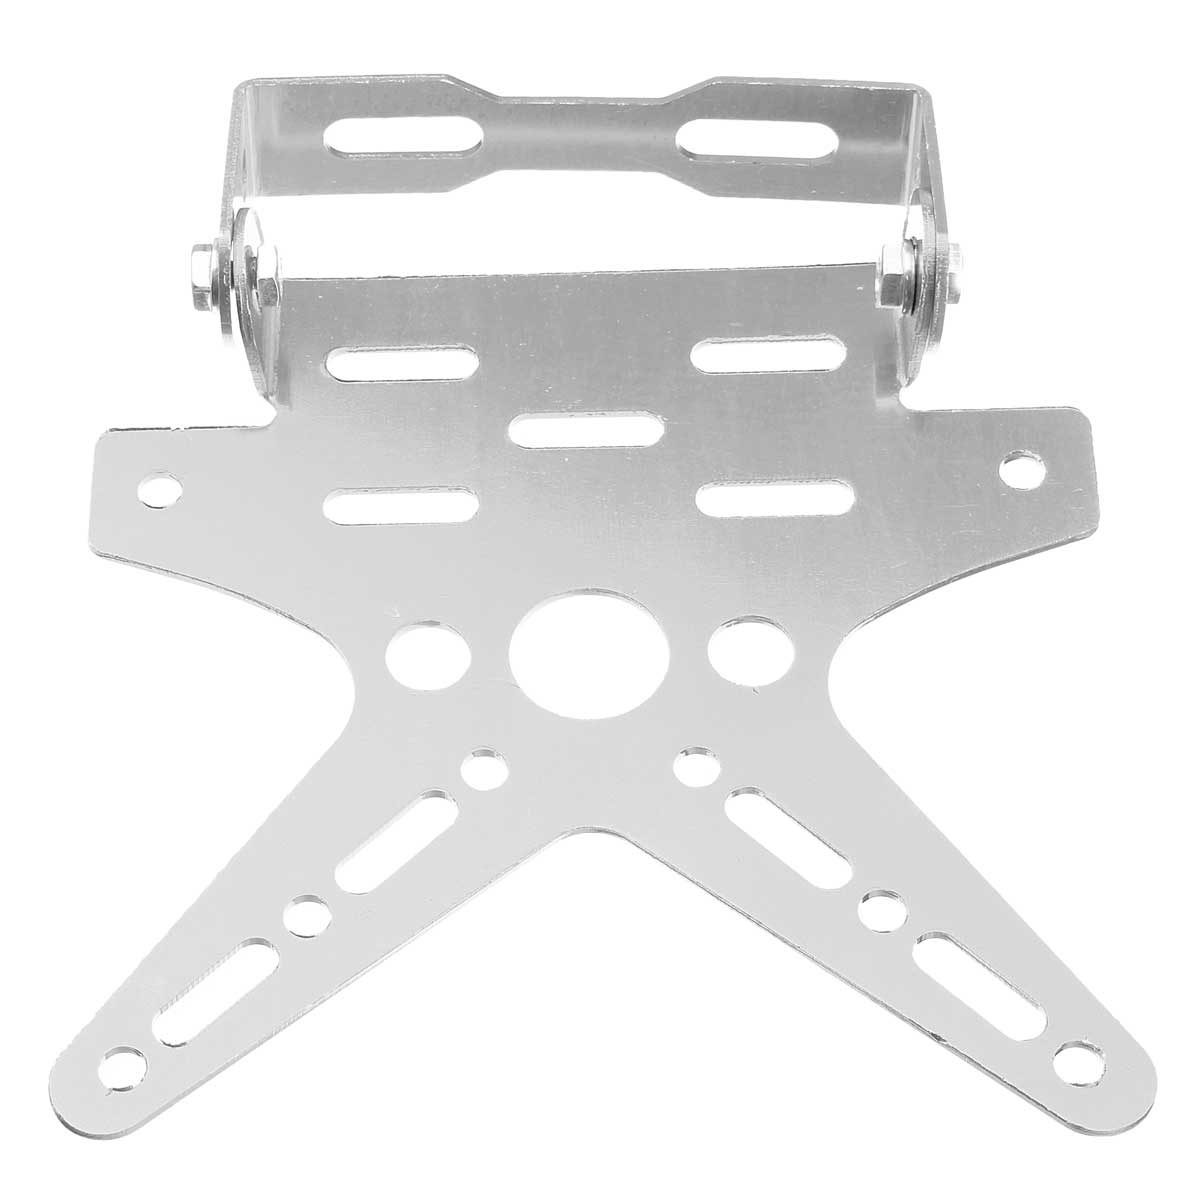 Universal Motorcycle License Plate Holder Aluminum Alloy Mount ...